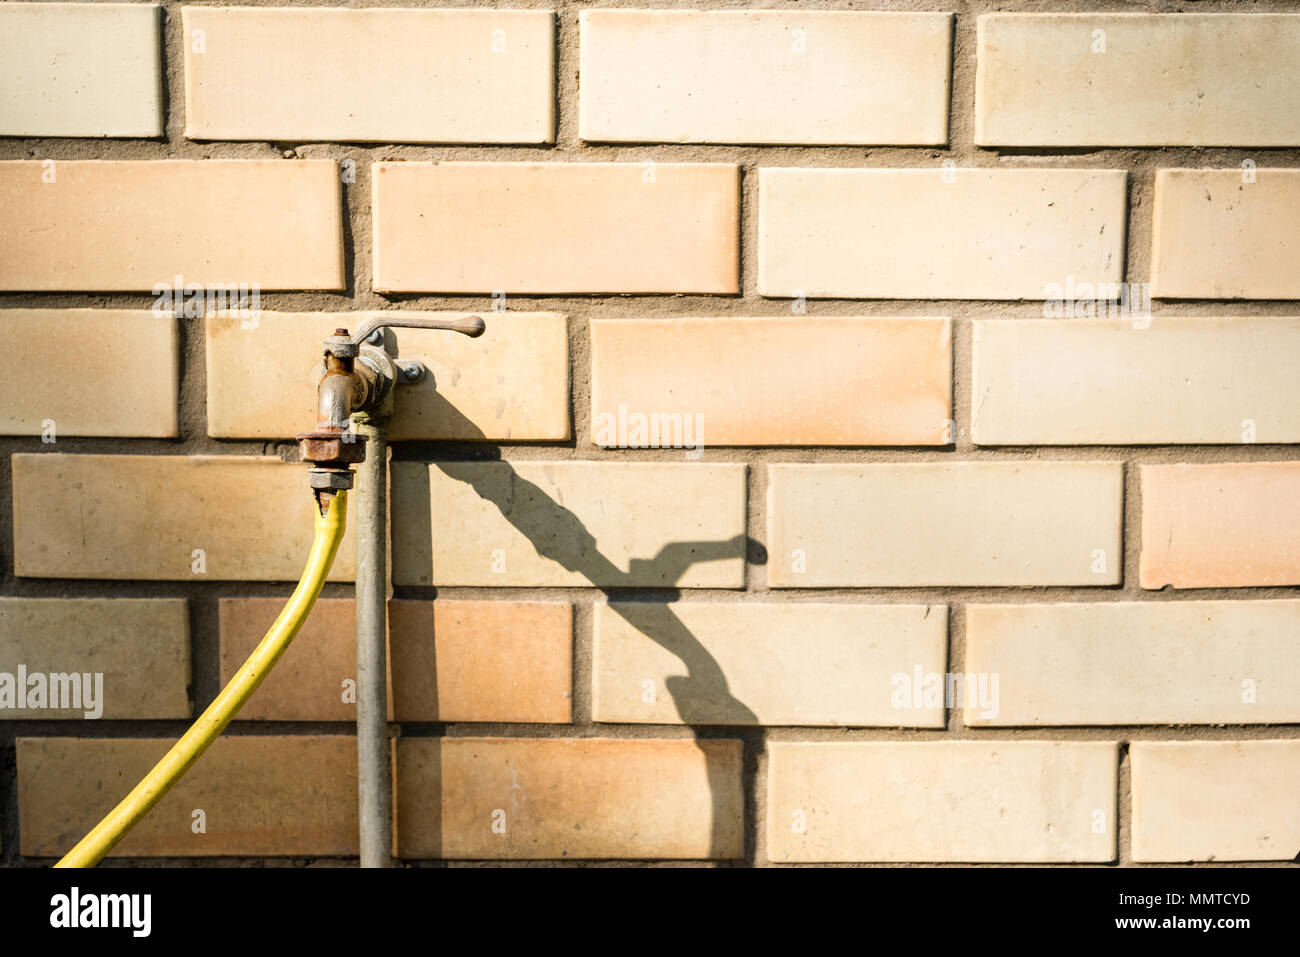 Water Tap With Yellow Garden Hose Stock Photos & Water Tap With ...